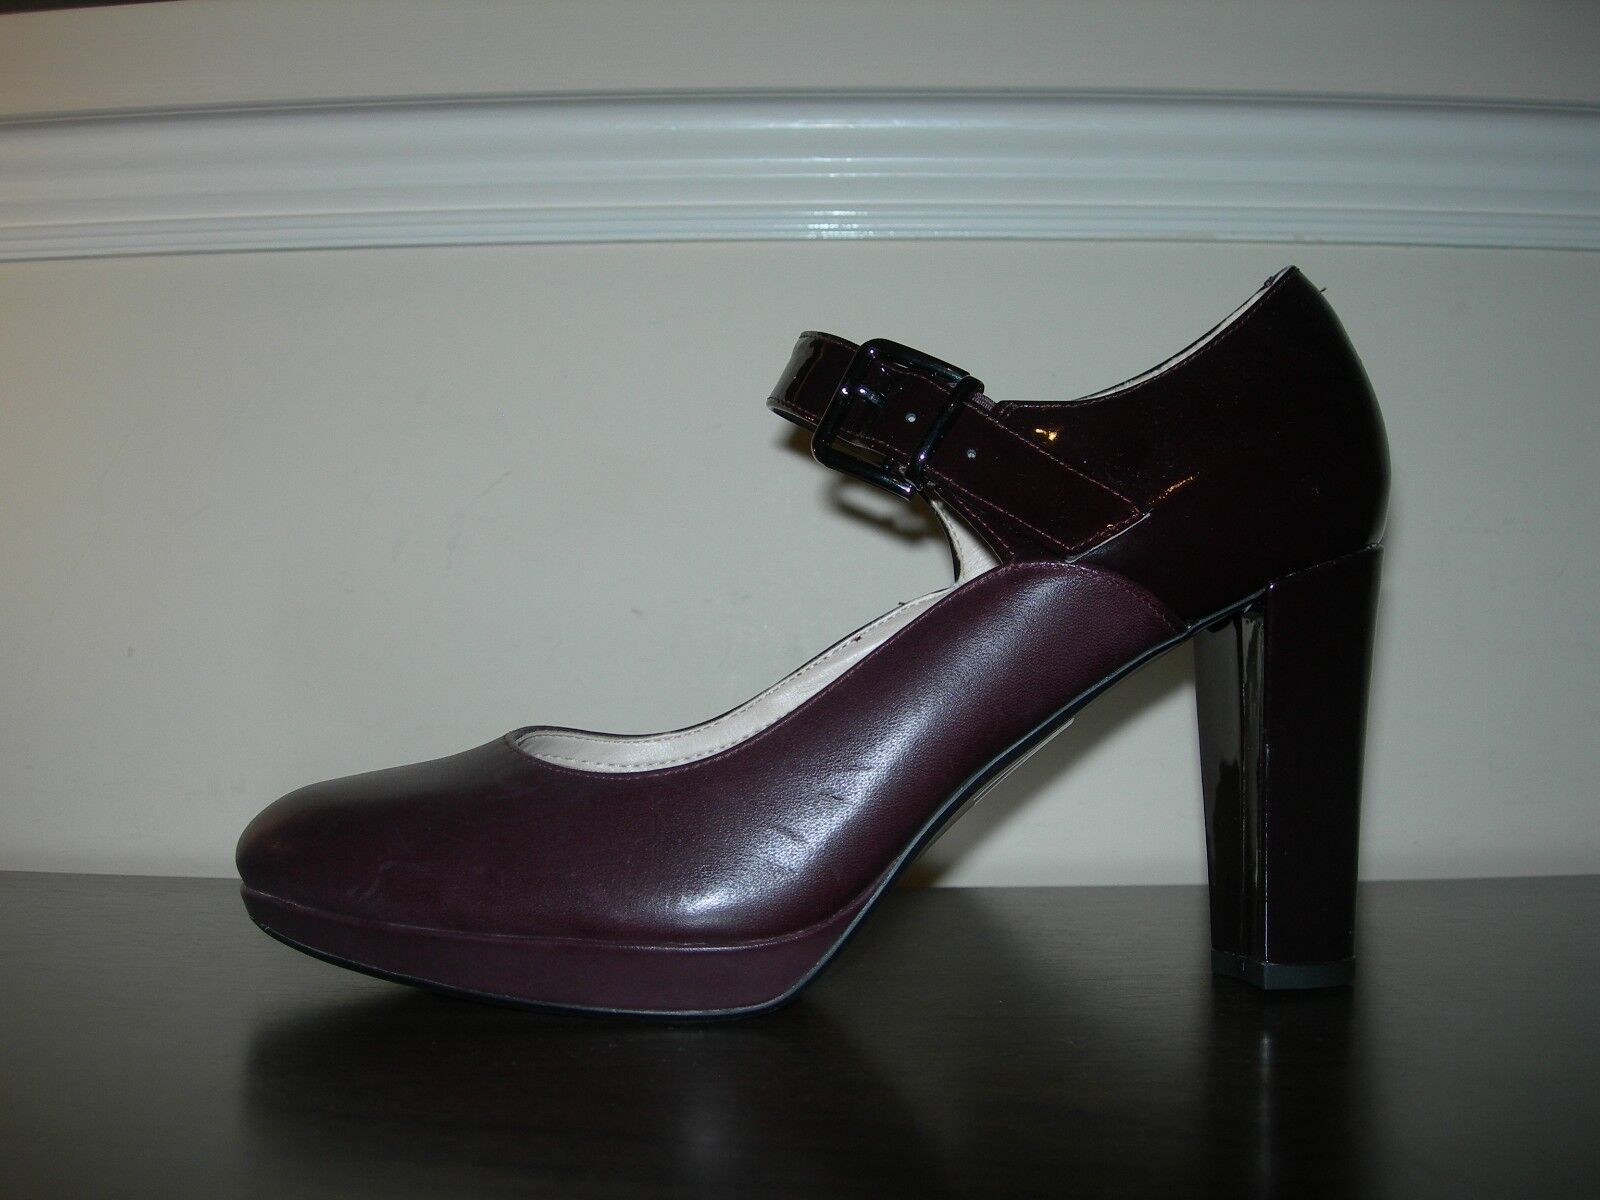 CLARKS NARRATIVE femmes COURT chaussures MARY JANES HEELS AUBERGINE EU 42   UK 8 D